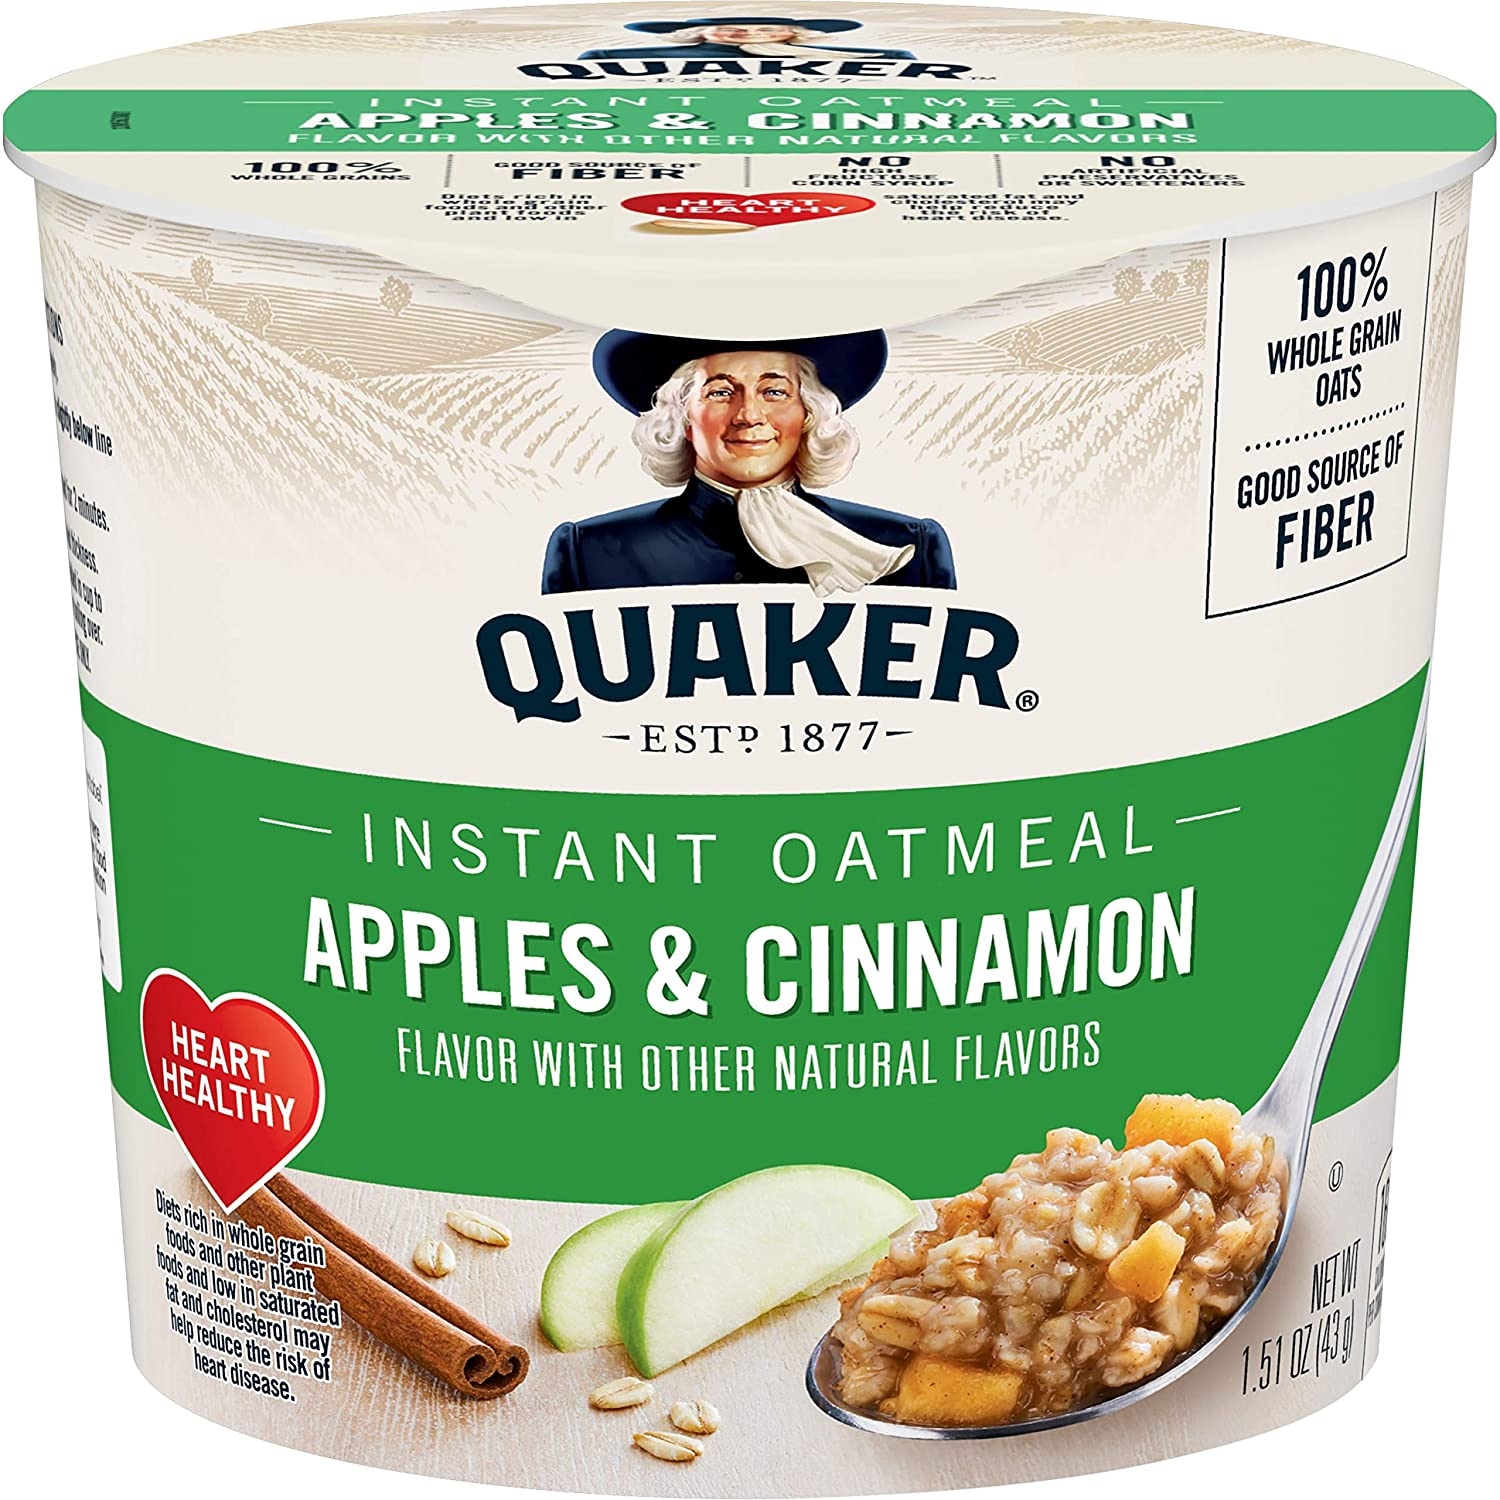 Quaker Instant Oatmeal Express Cups, Apples & Cinnamon, 12 Count